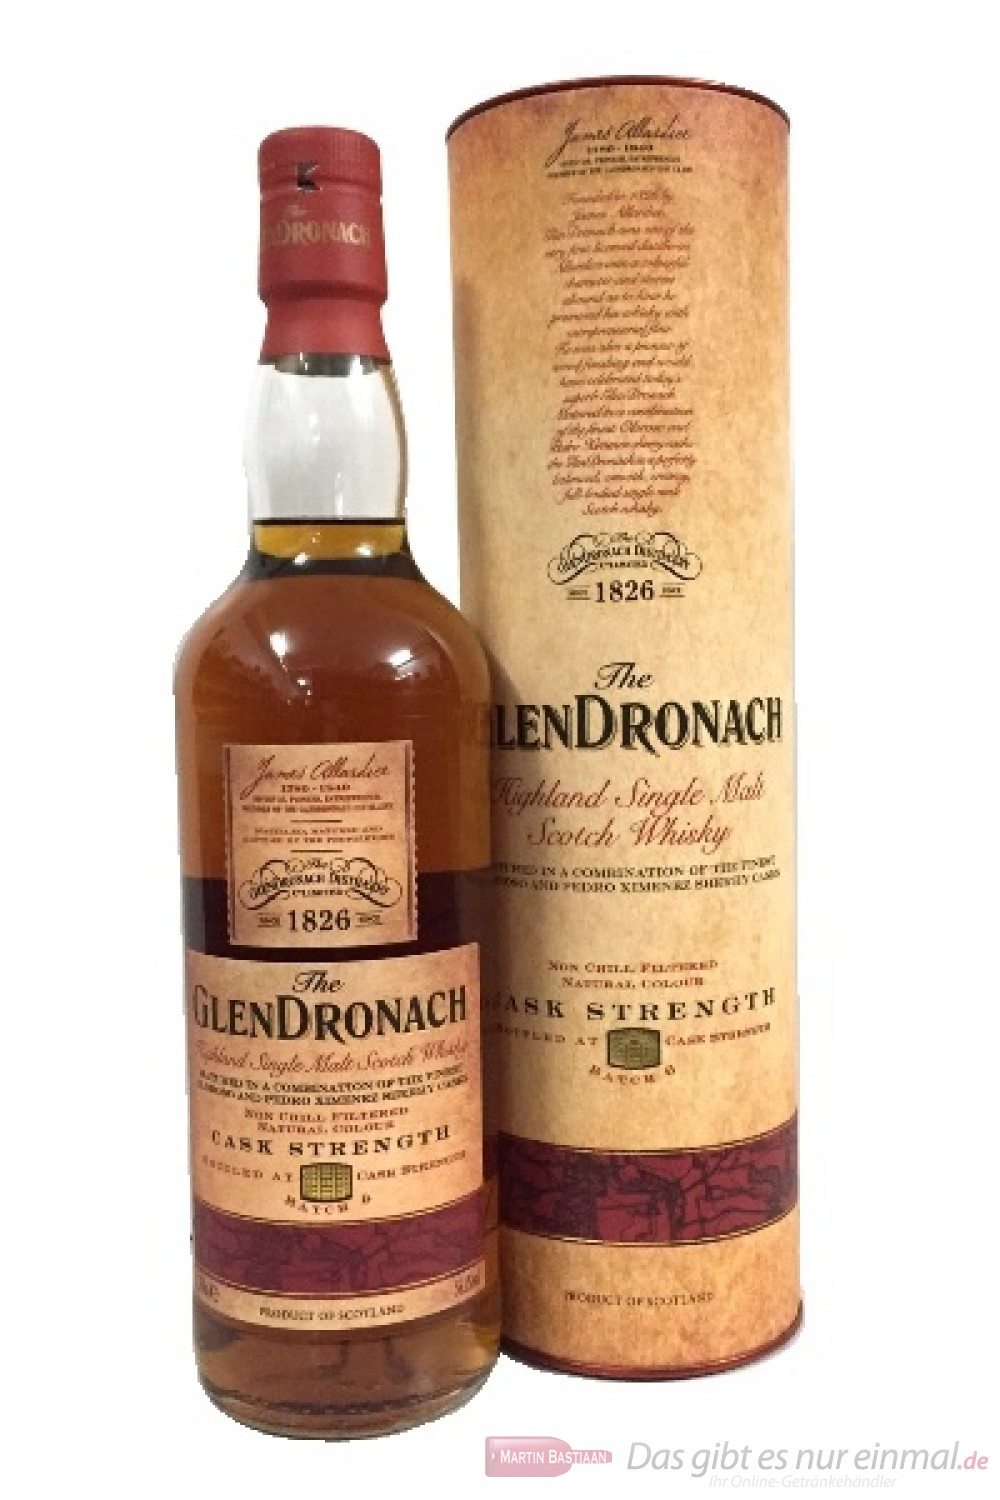 Glendronach Cask Strength Batch No. 6